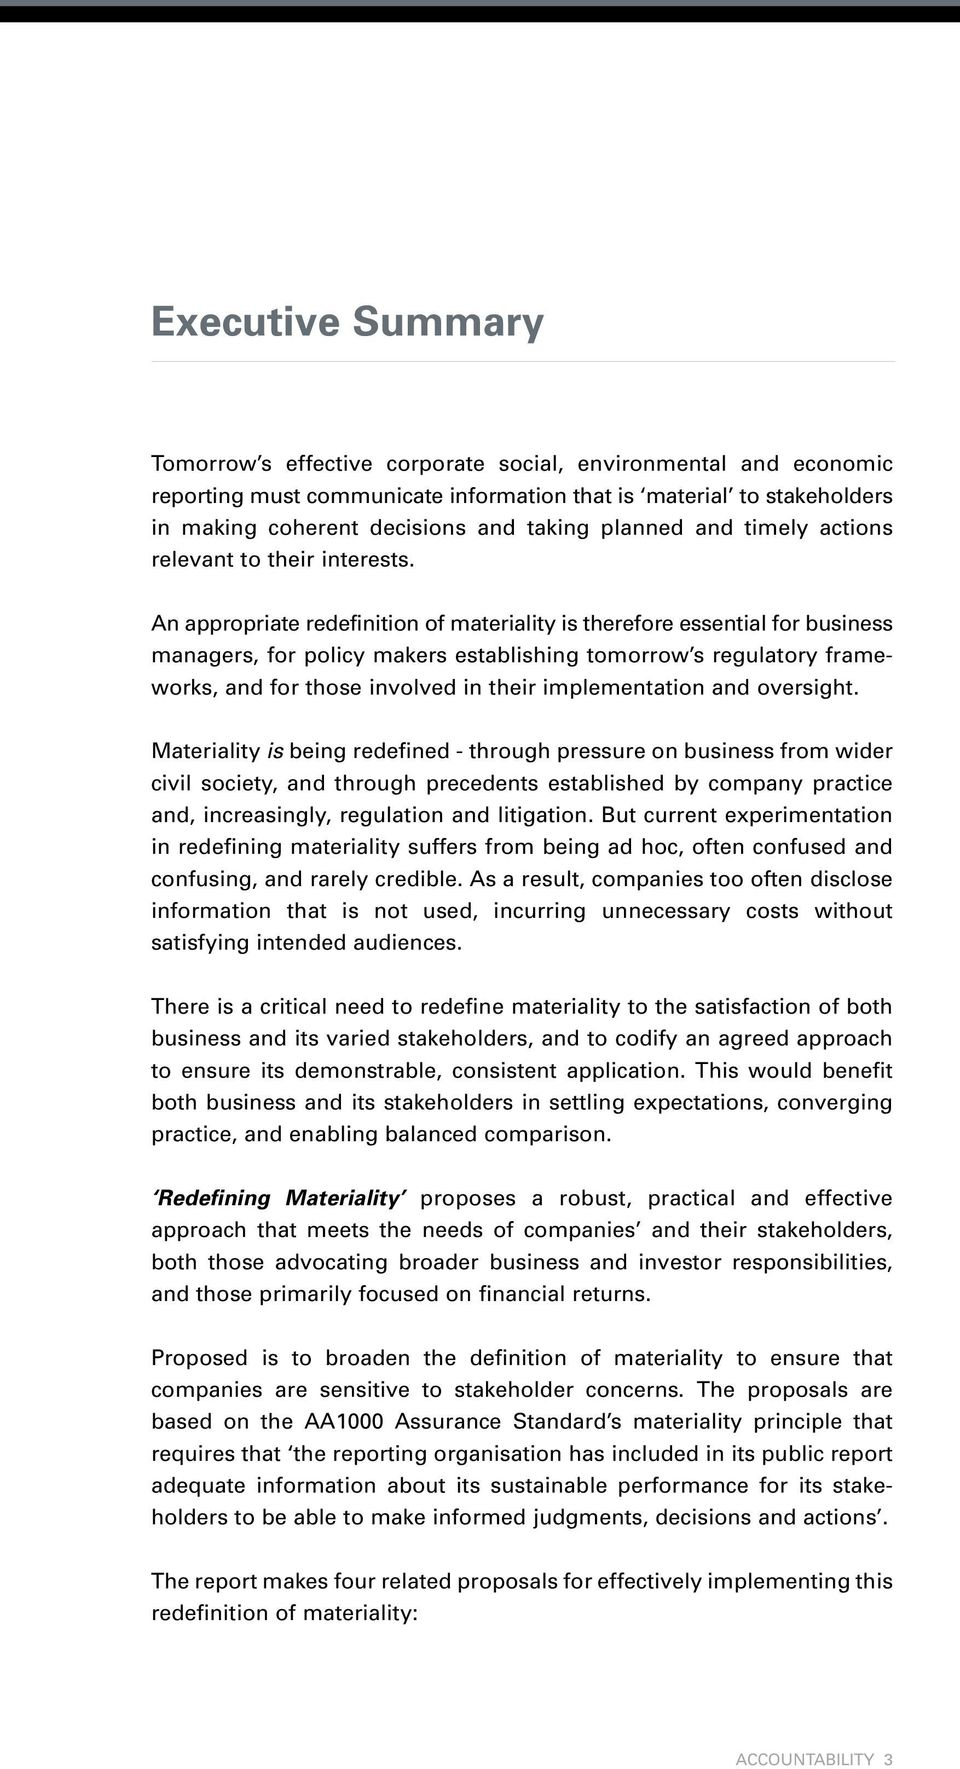 An appropriate redefinition of materiality is therefore essential for business managers, for policy makers establishing tomorrow s regulatory frameworks, and for those involved in their